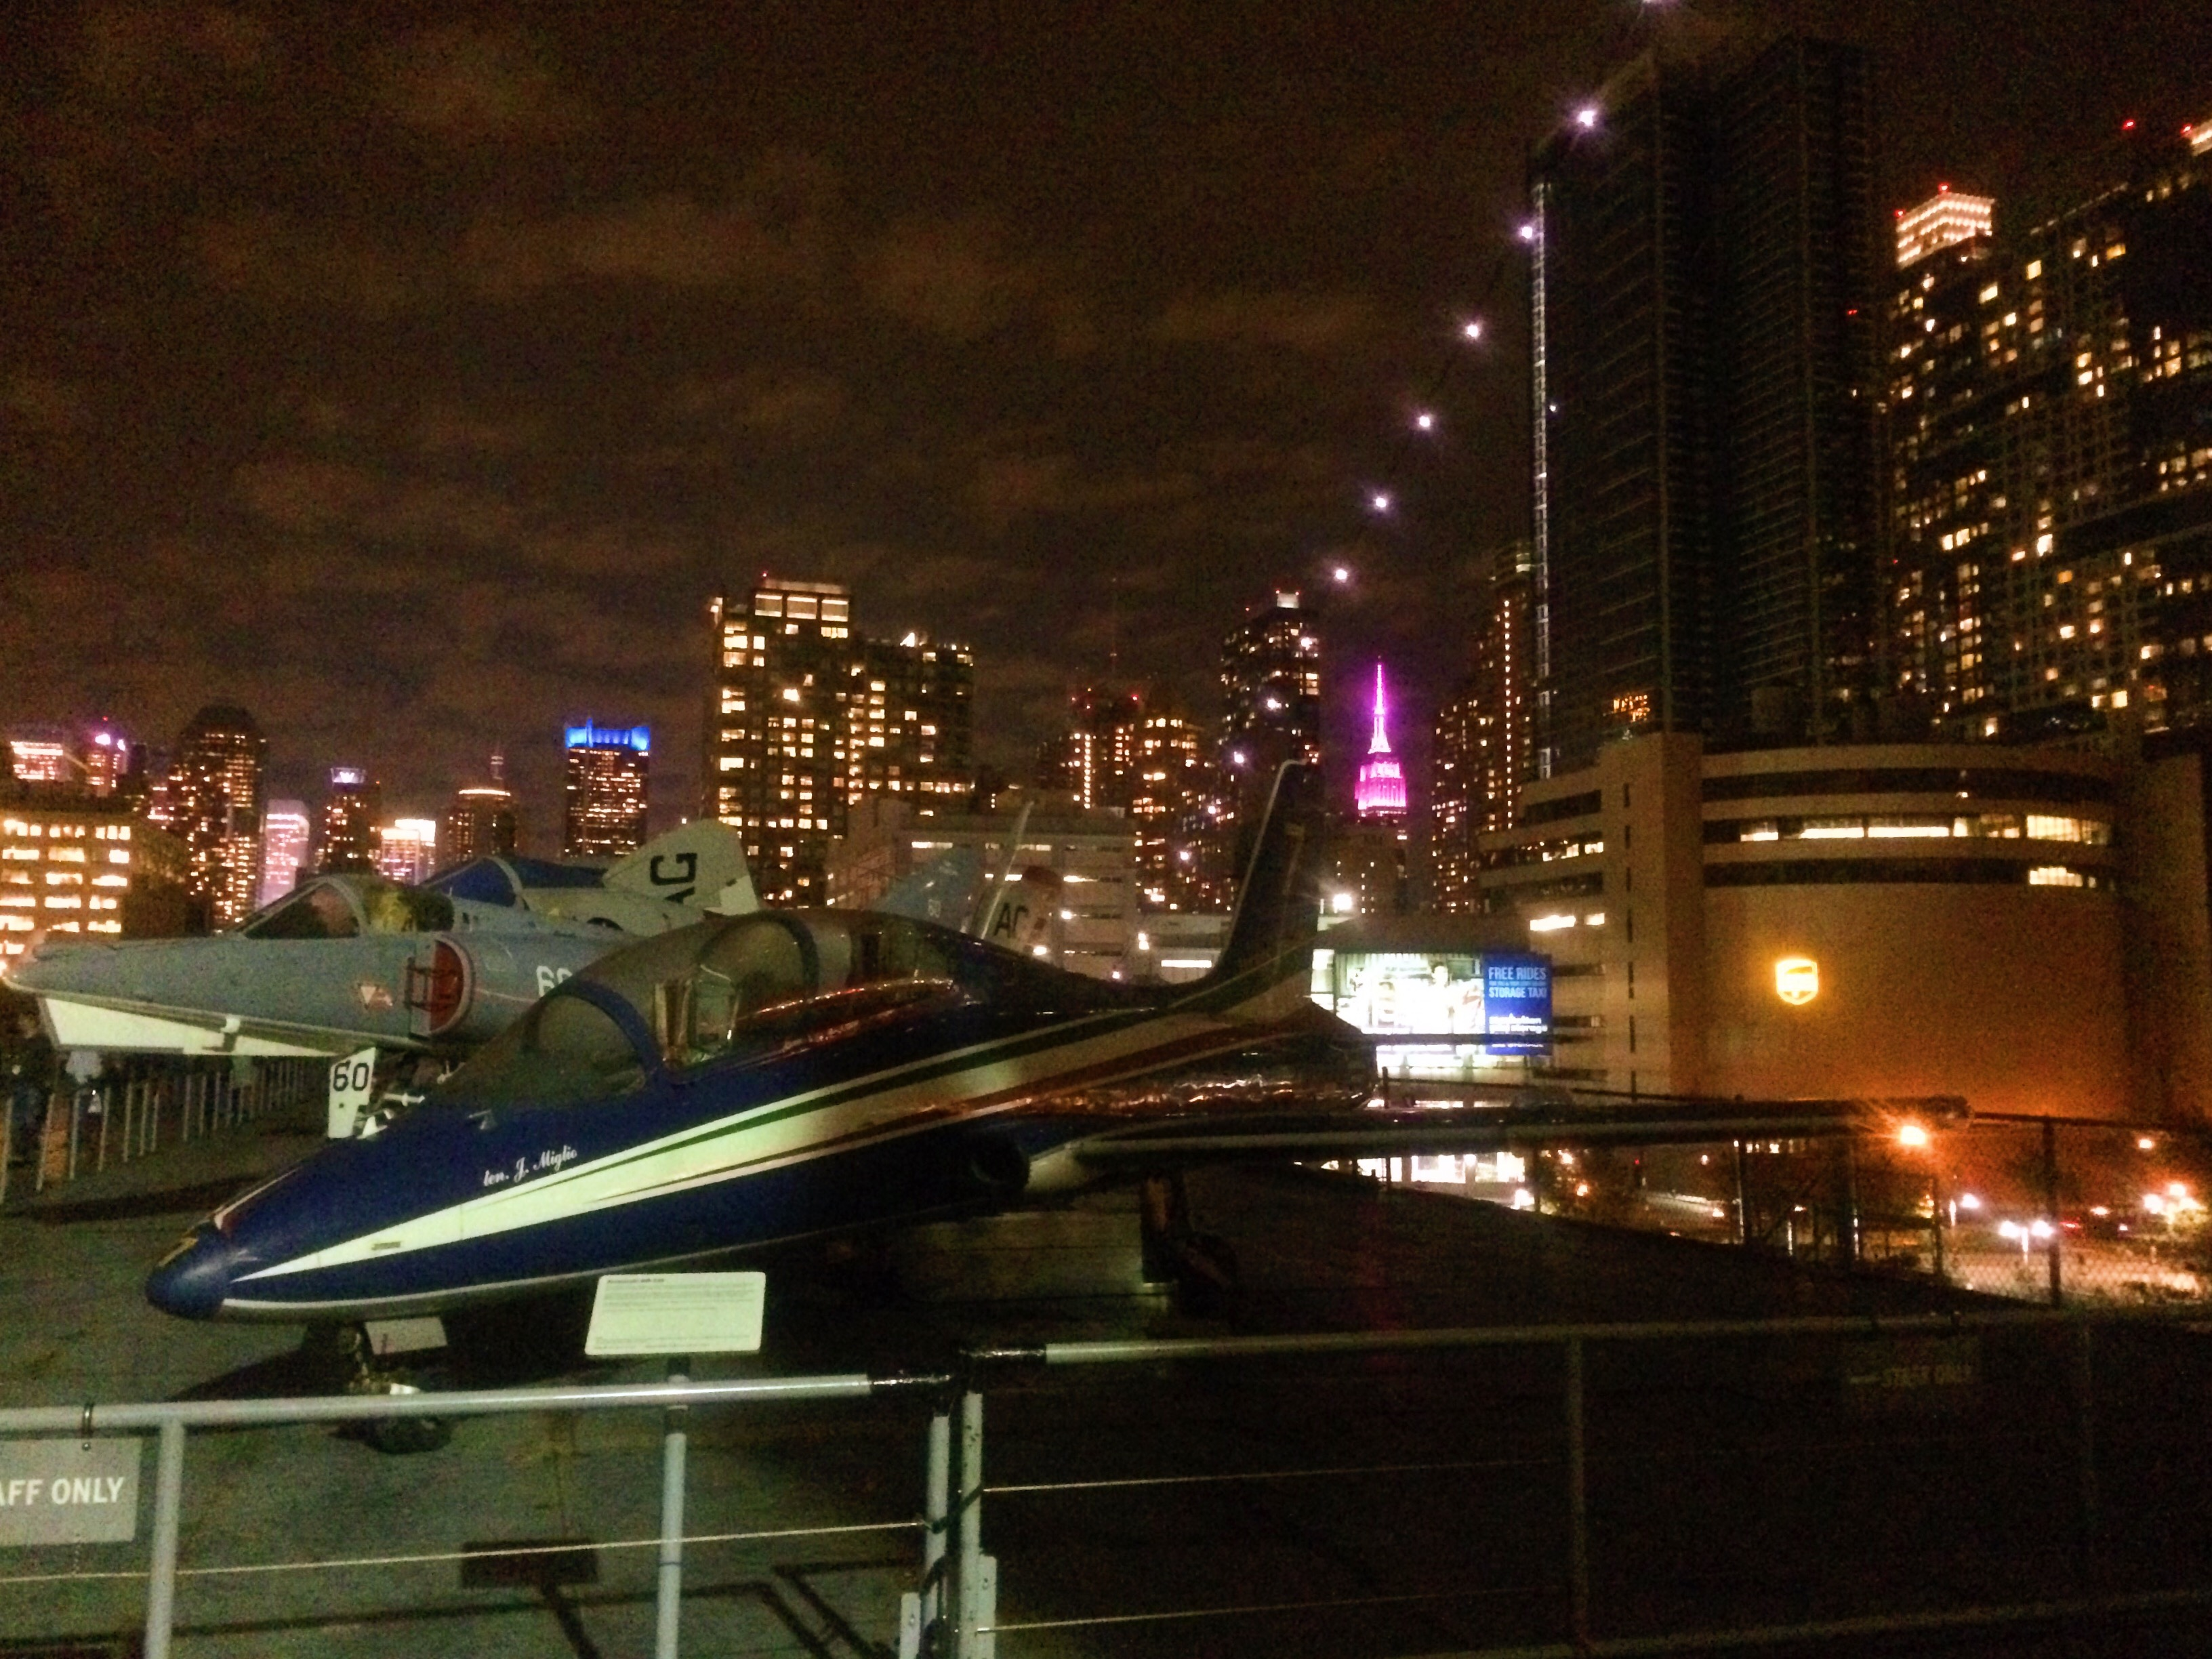 On the Deck of the Intrepid